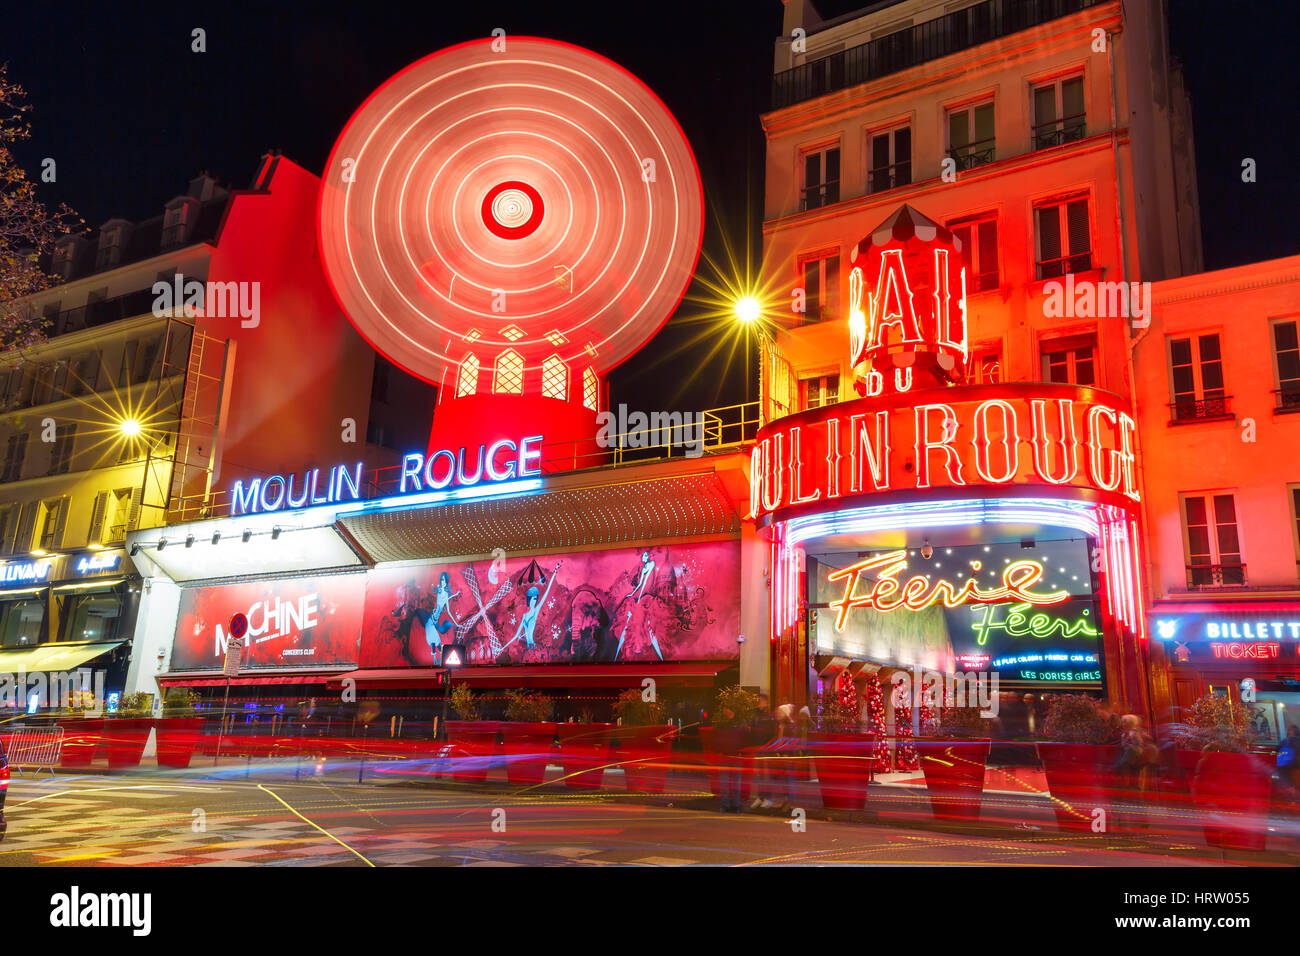 Paris, France - December 28, 2016: The picturesque famous cabaret Moulin Rouge located close to Montmartre in the Stock Photo